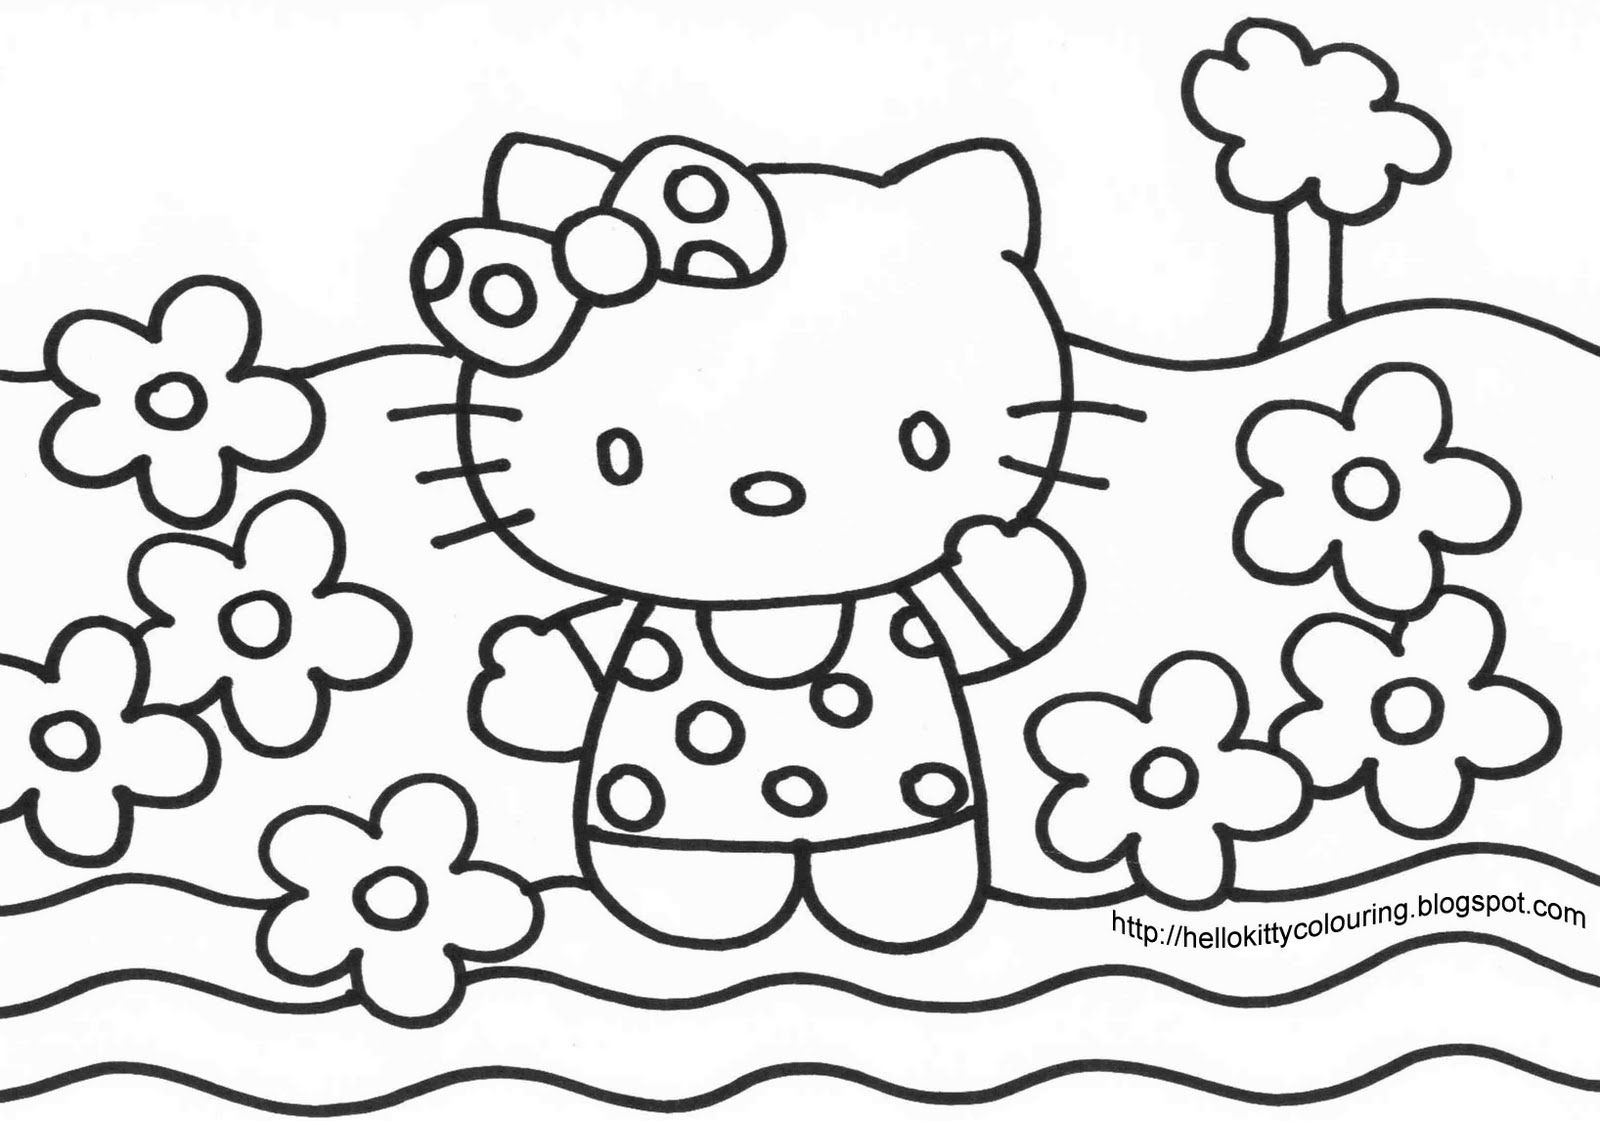 Hello Kitty Coloring Pages Big Coloring Pages Of Hello Kitty With ...